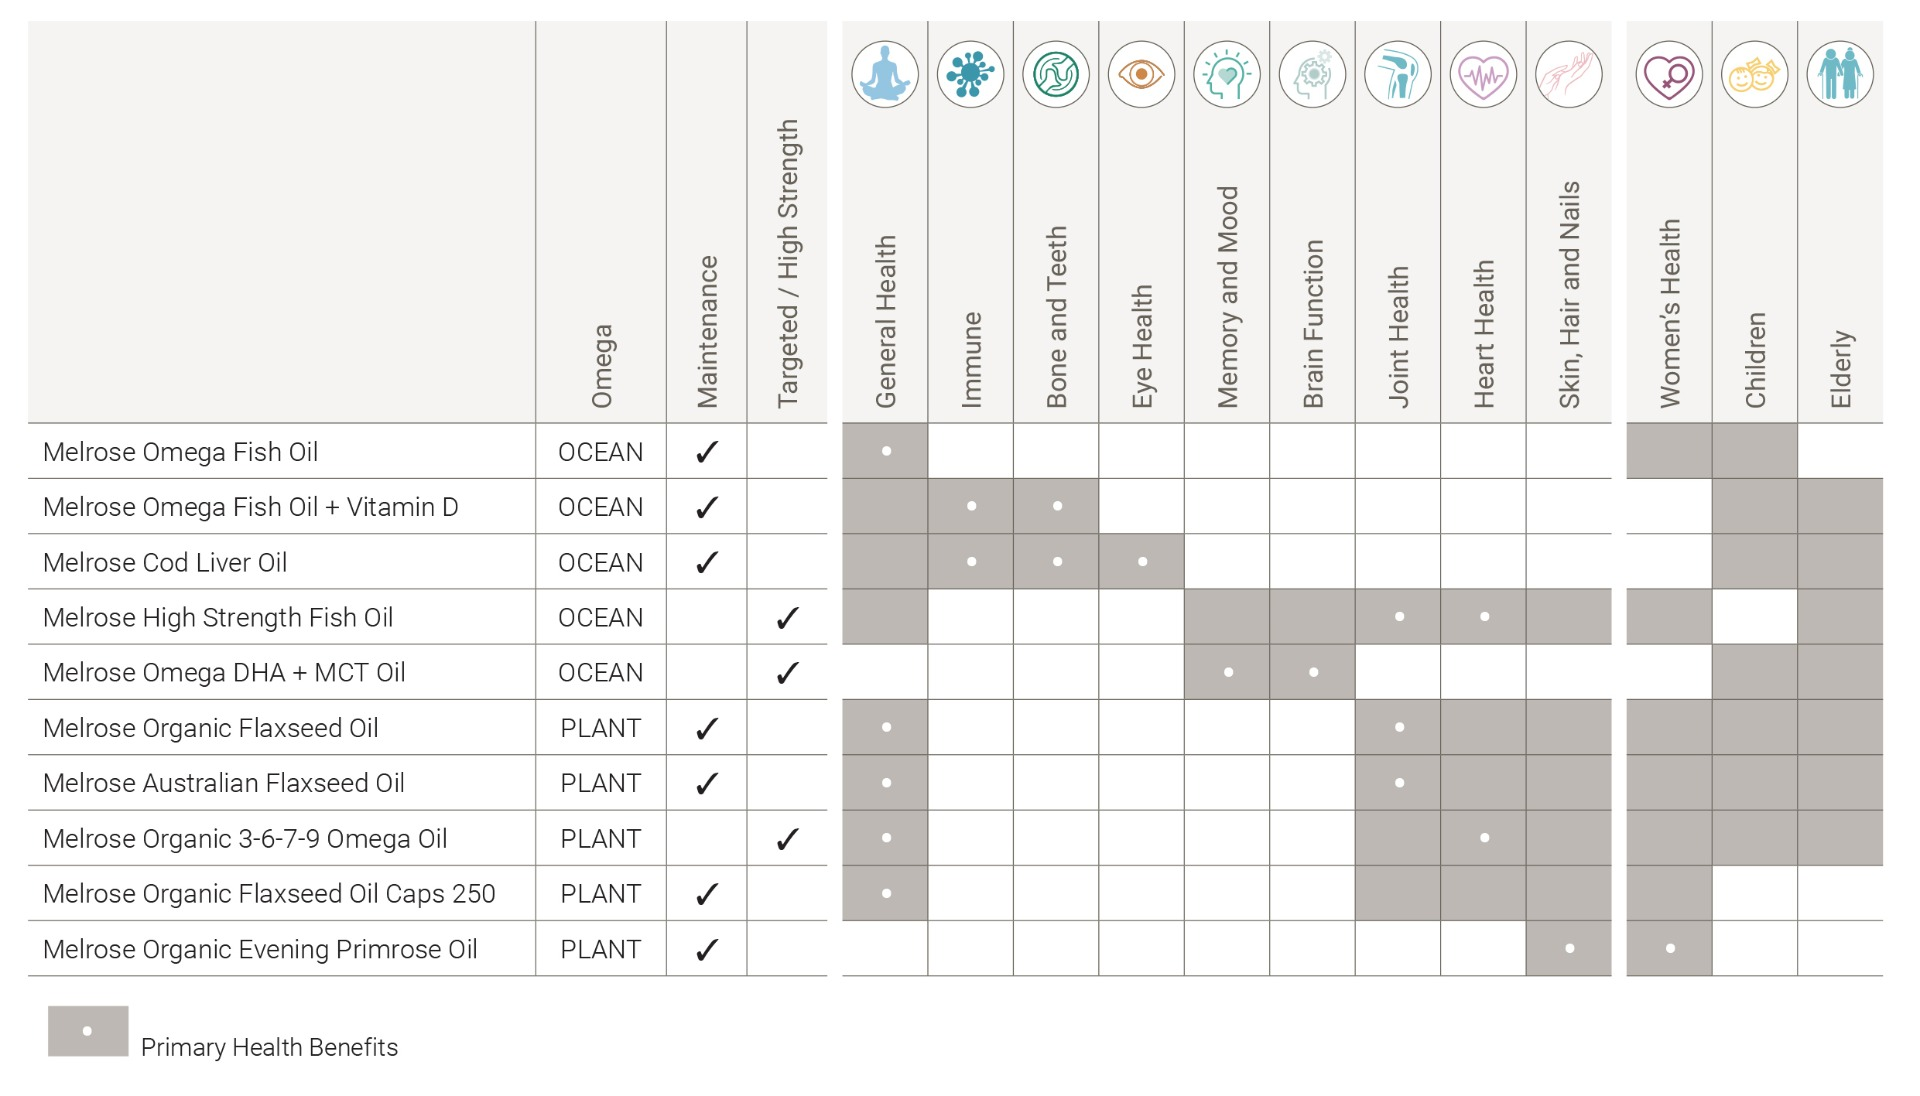 Melrose Pure Omegas Health Focus Chart